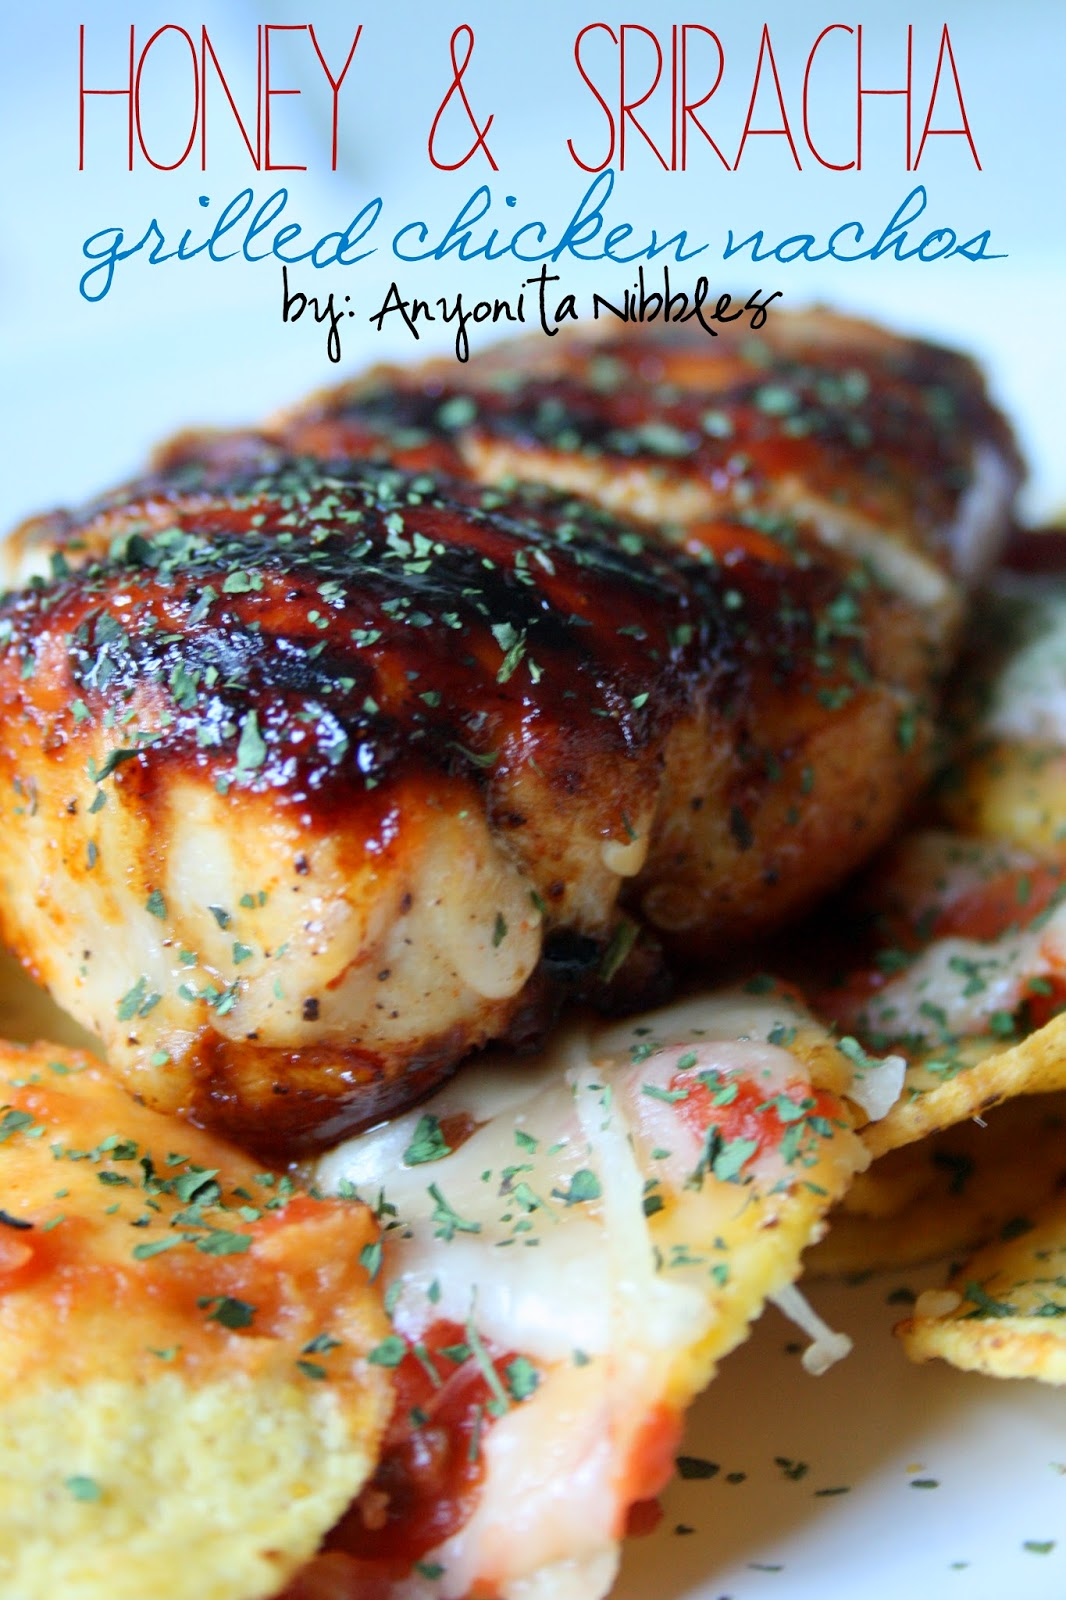 Mouthwatering and gluten free honey & Sriracha grilled chicken nachos from Anyonita Nibbles